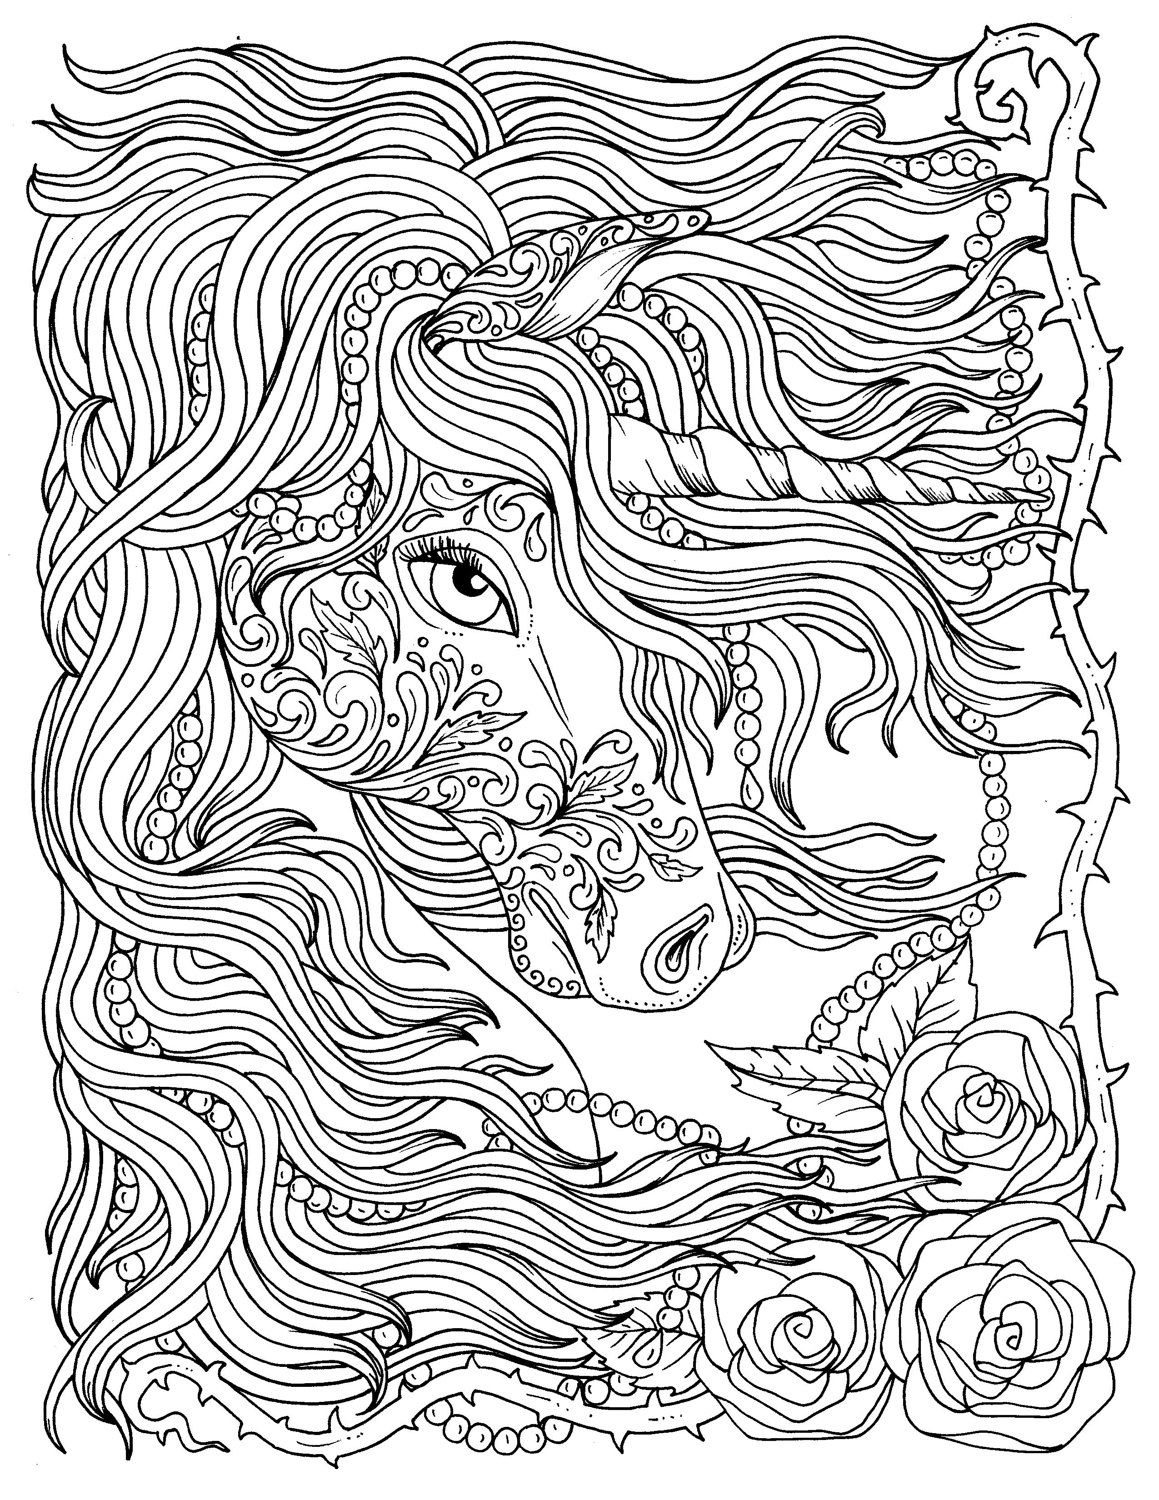 Coloring Page ~ Unicornoloring Page For Adults Beautiful Difficult